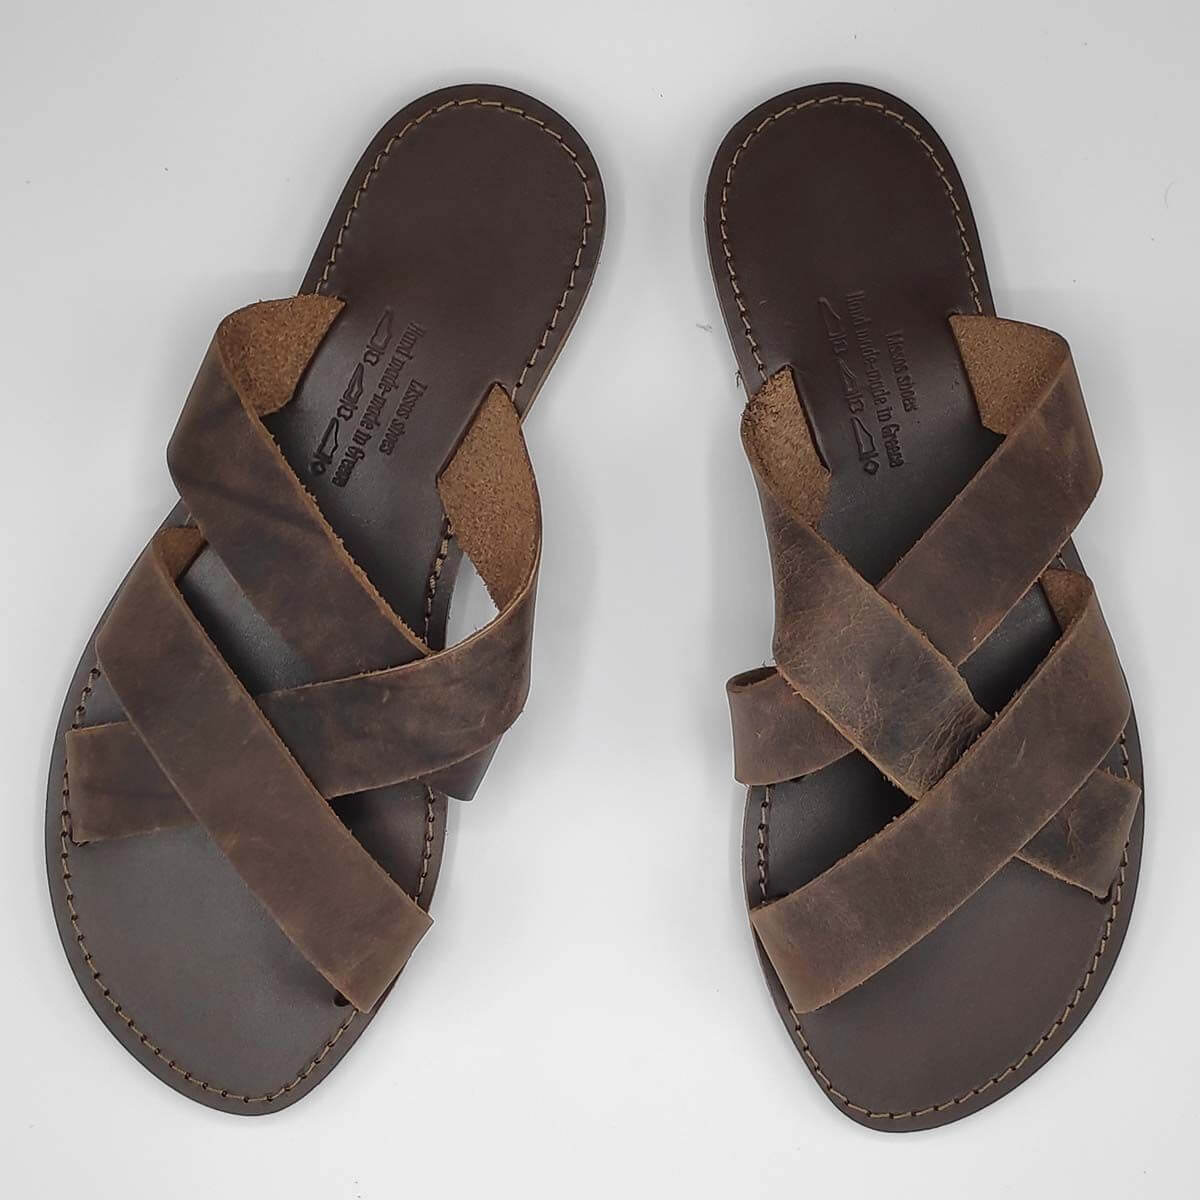 leather sandals for men brown three straps criss cross top view - Avithos Men